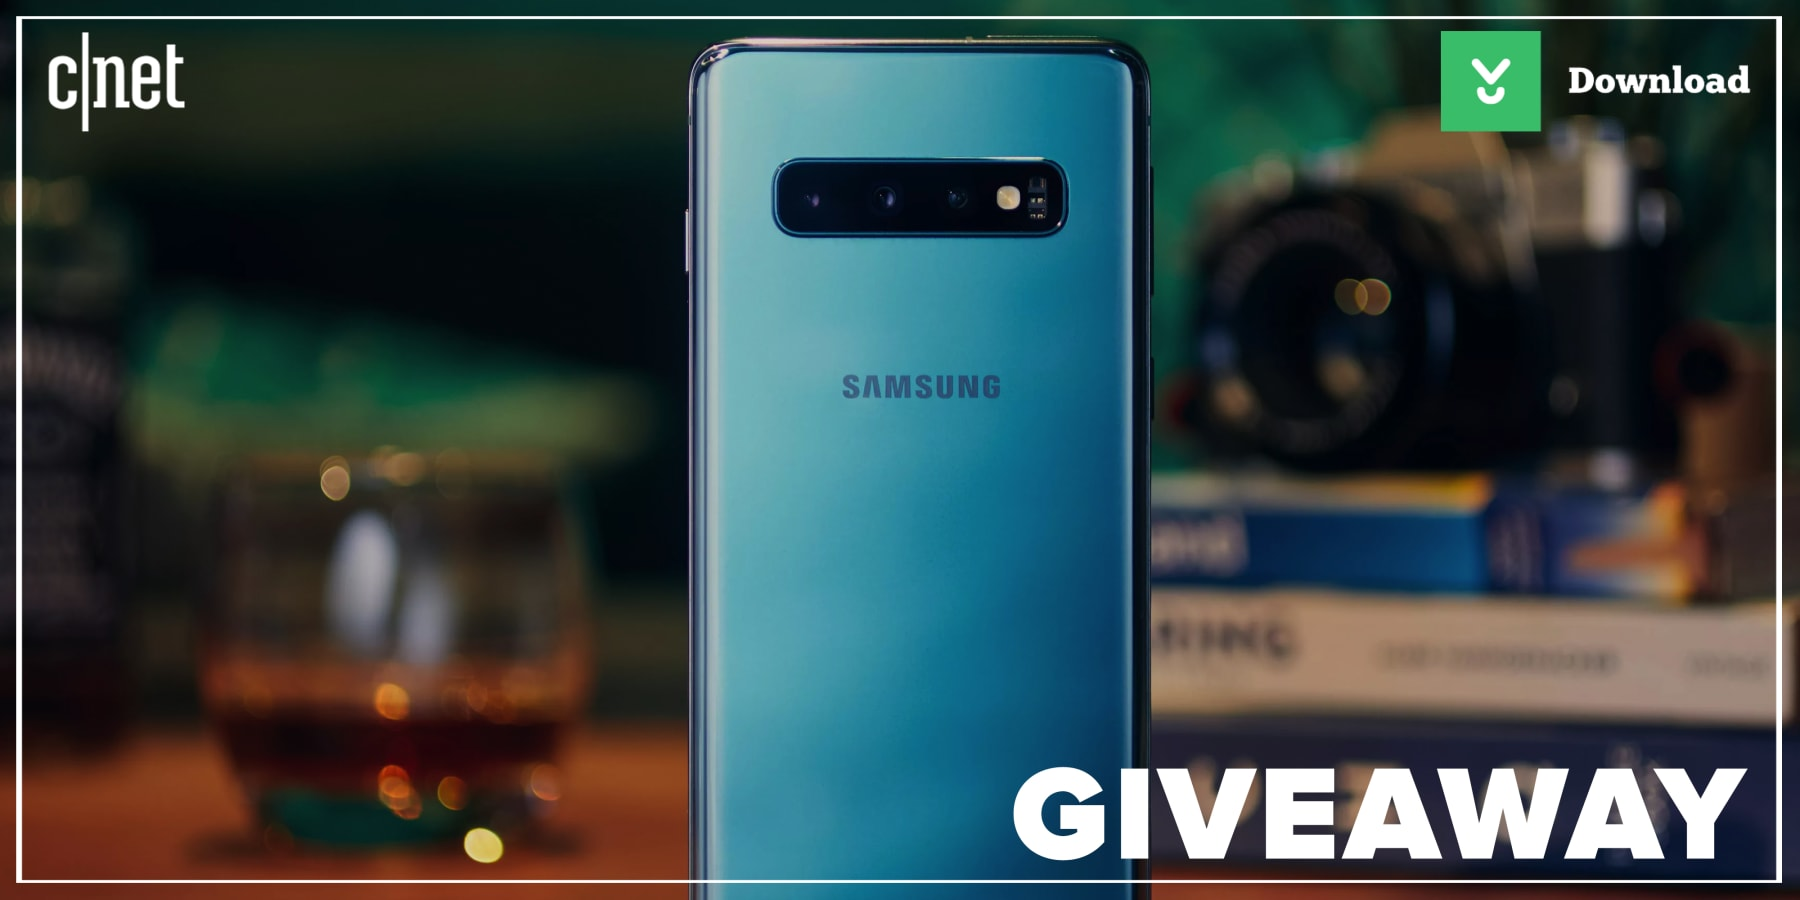 Want a Galaxy S10 Plus? Great! We're giving one away! - CNET